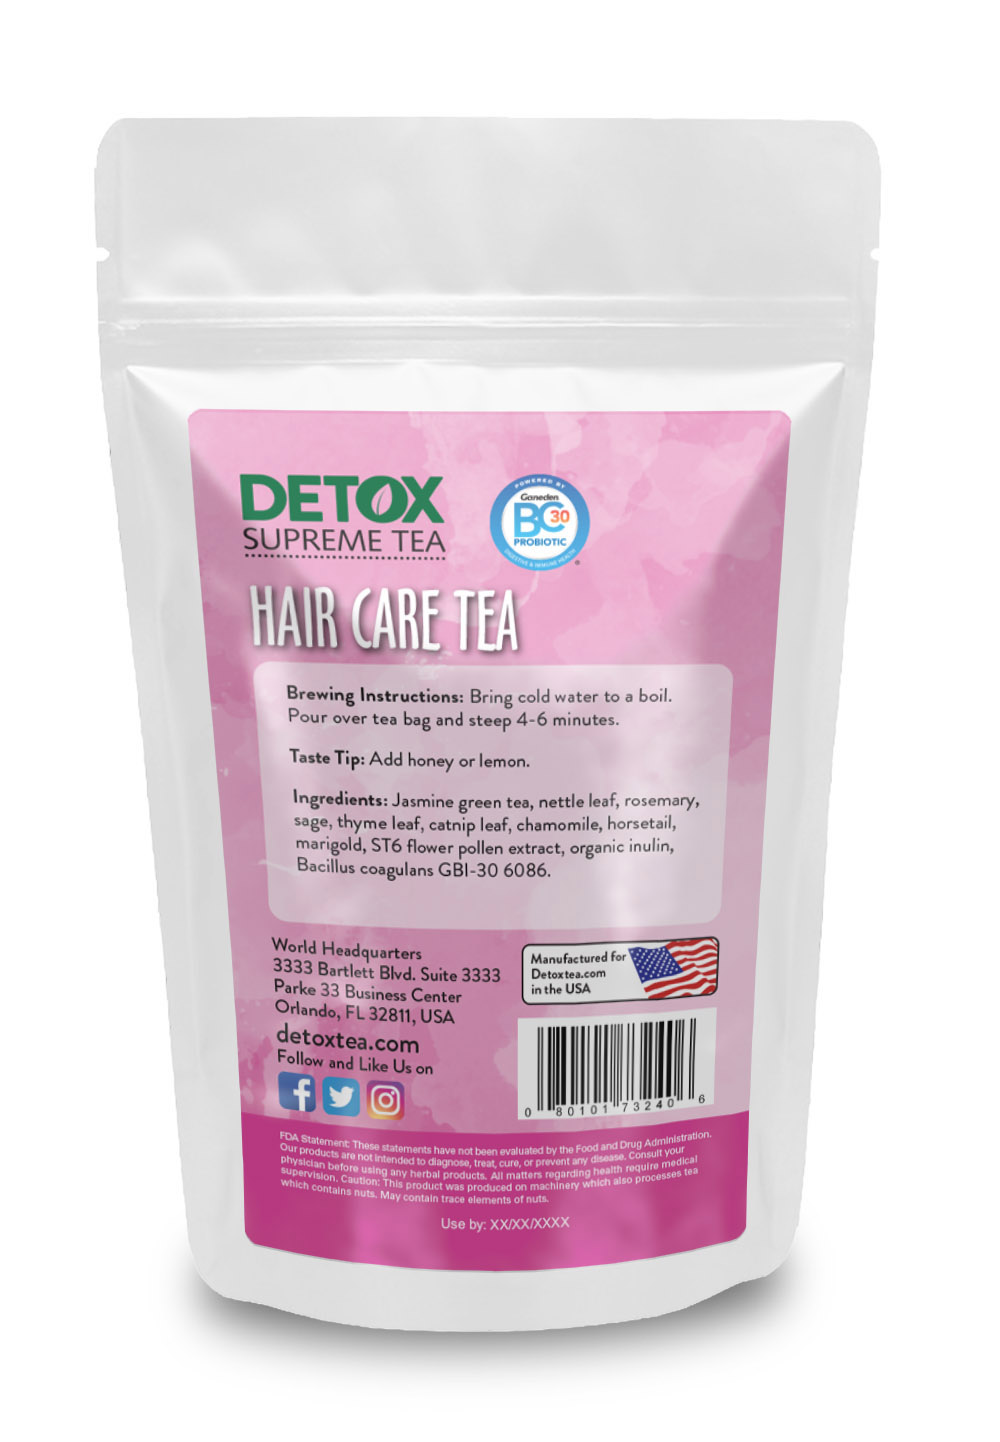 14 Day Hair Care Tea with Probiotics Back